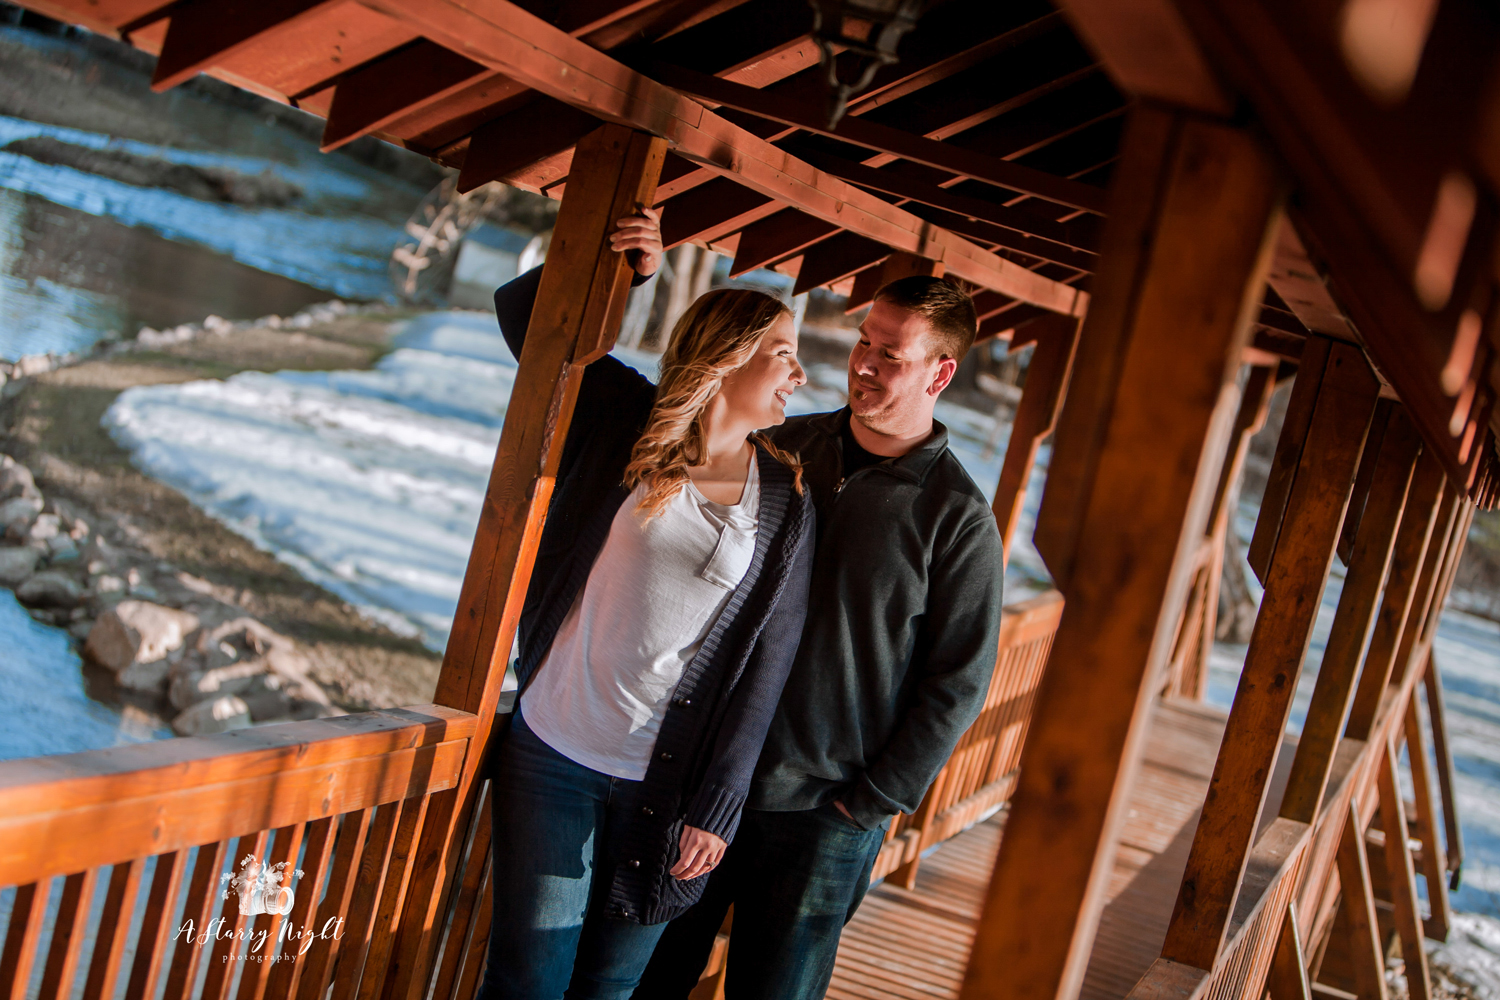 Erik-Marisa-Engagement-Session (1 of 7).jpg